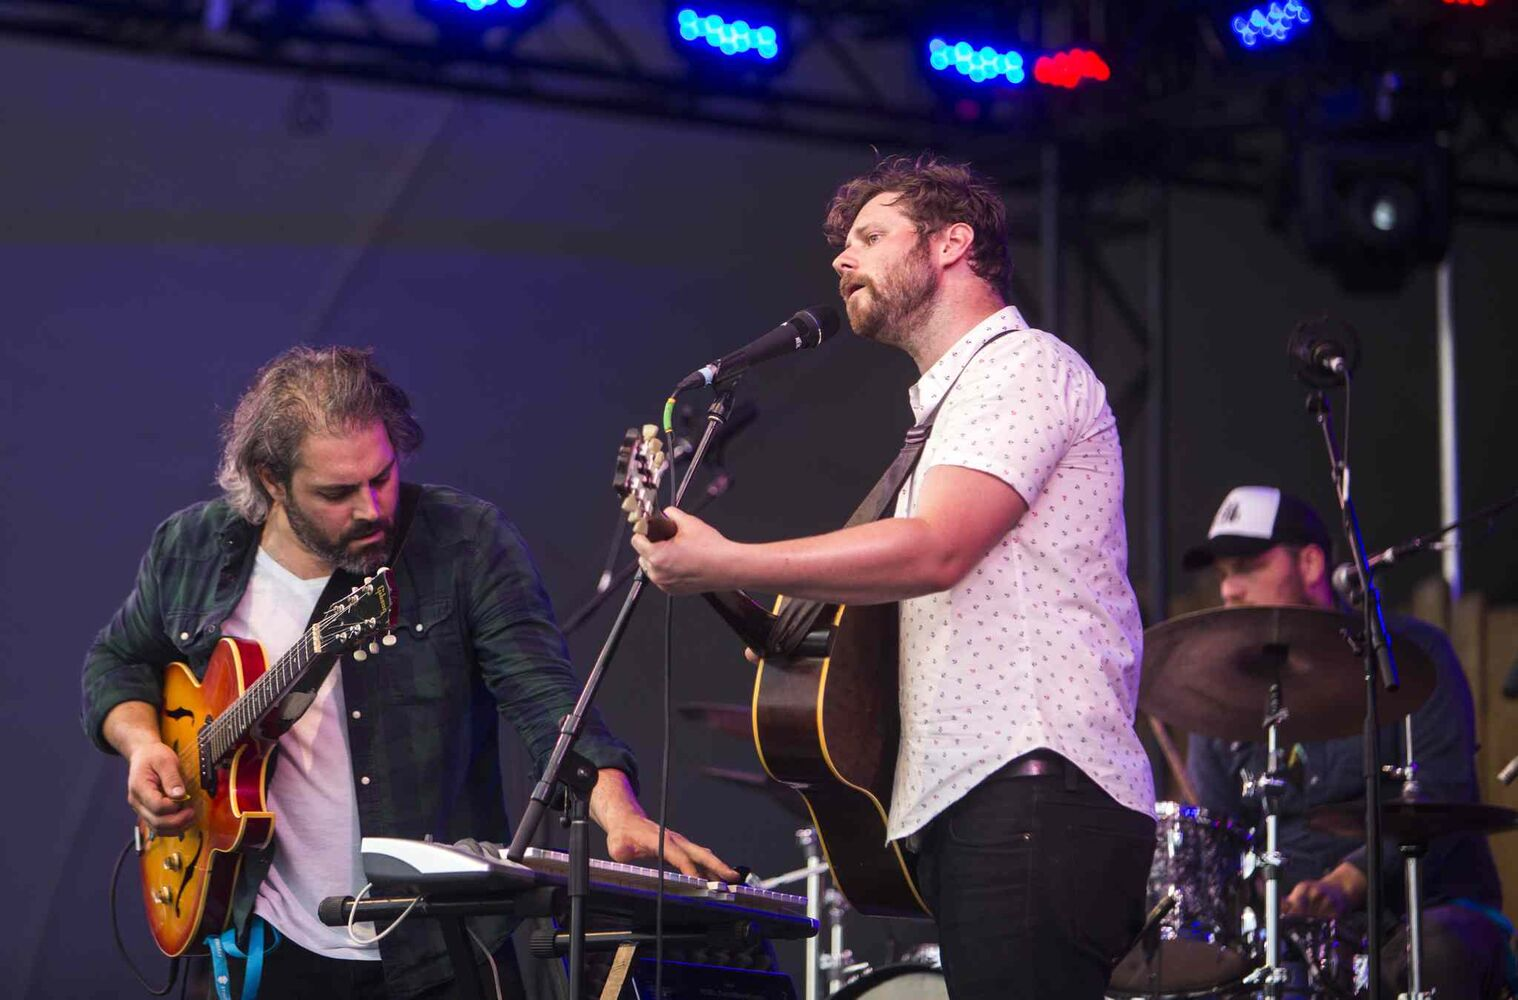 Dan Mangan + Blacksmith plays at the Winnipeg Folk Festival at Birds Hill Provincial Park on Saturday, July 11, 2015.   Mikaela MacKenzie / Winnipeg Free Press (Winnipeg Free Press)